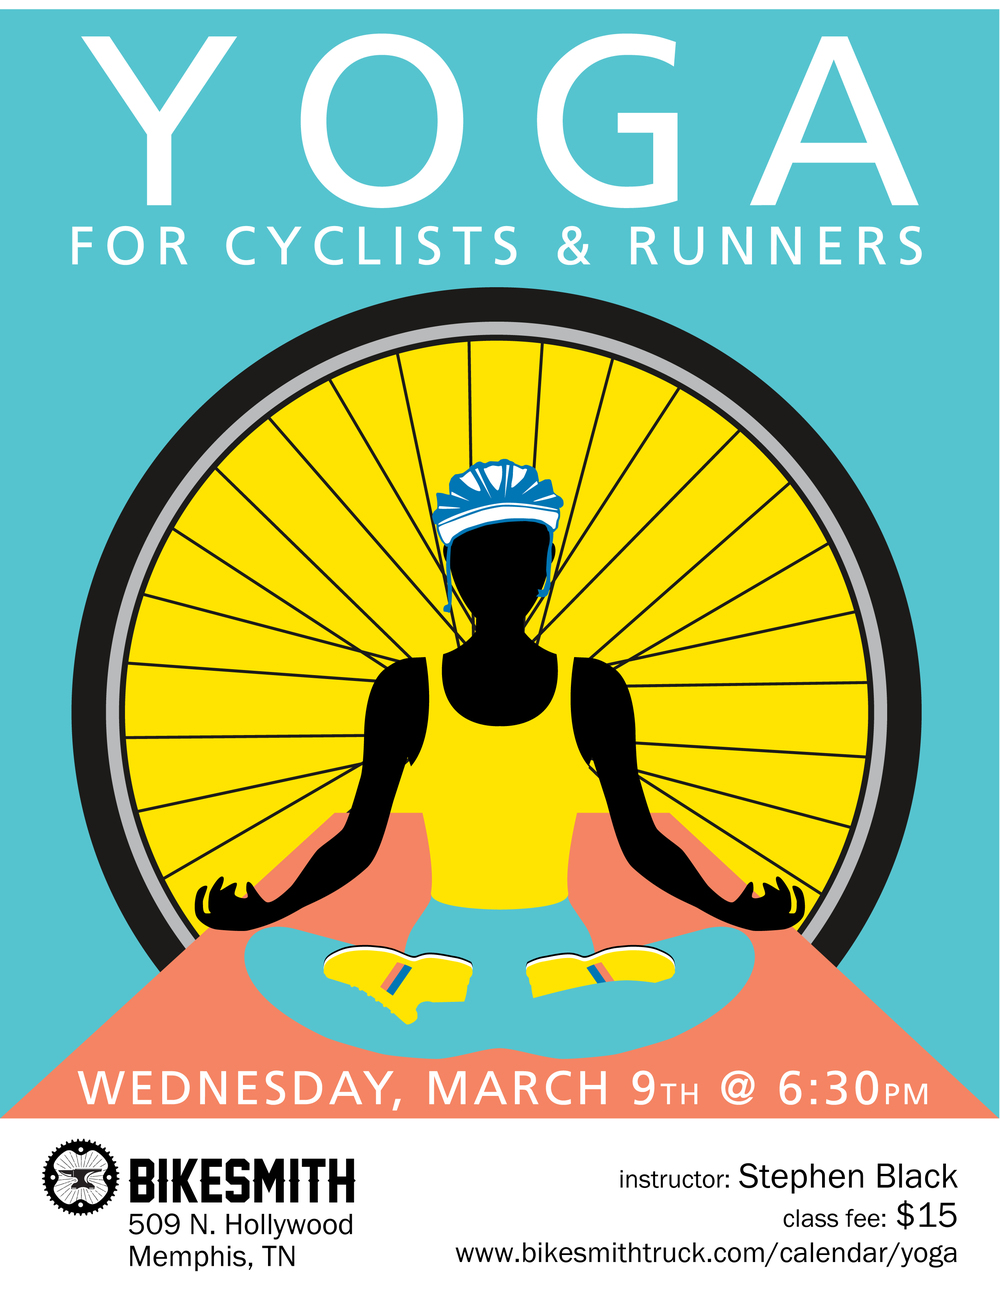 Yoga for bikers and runners